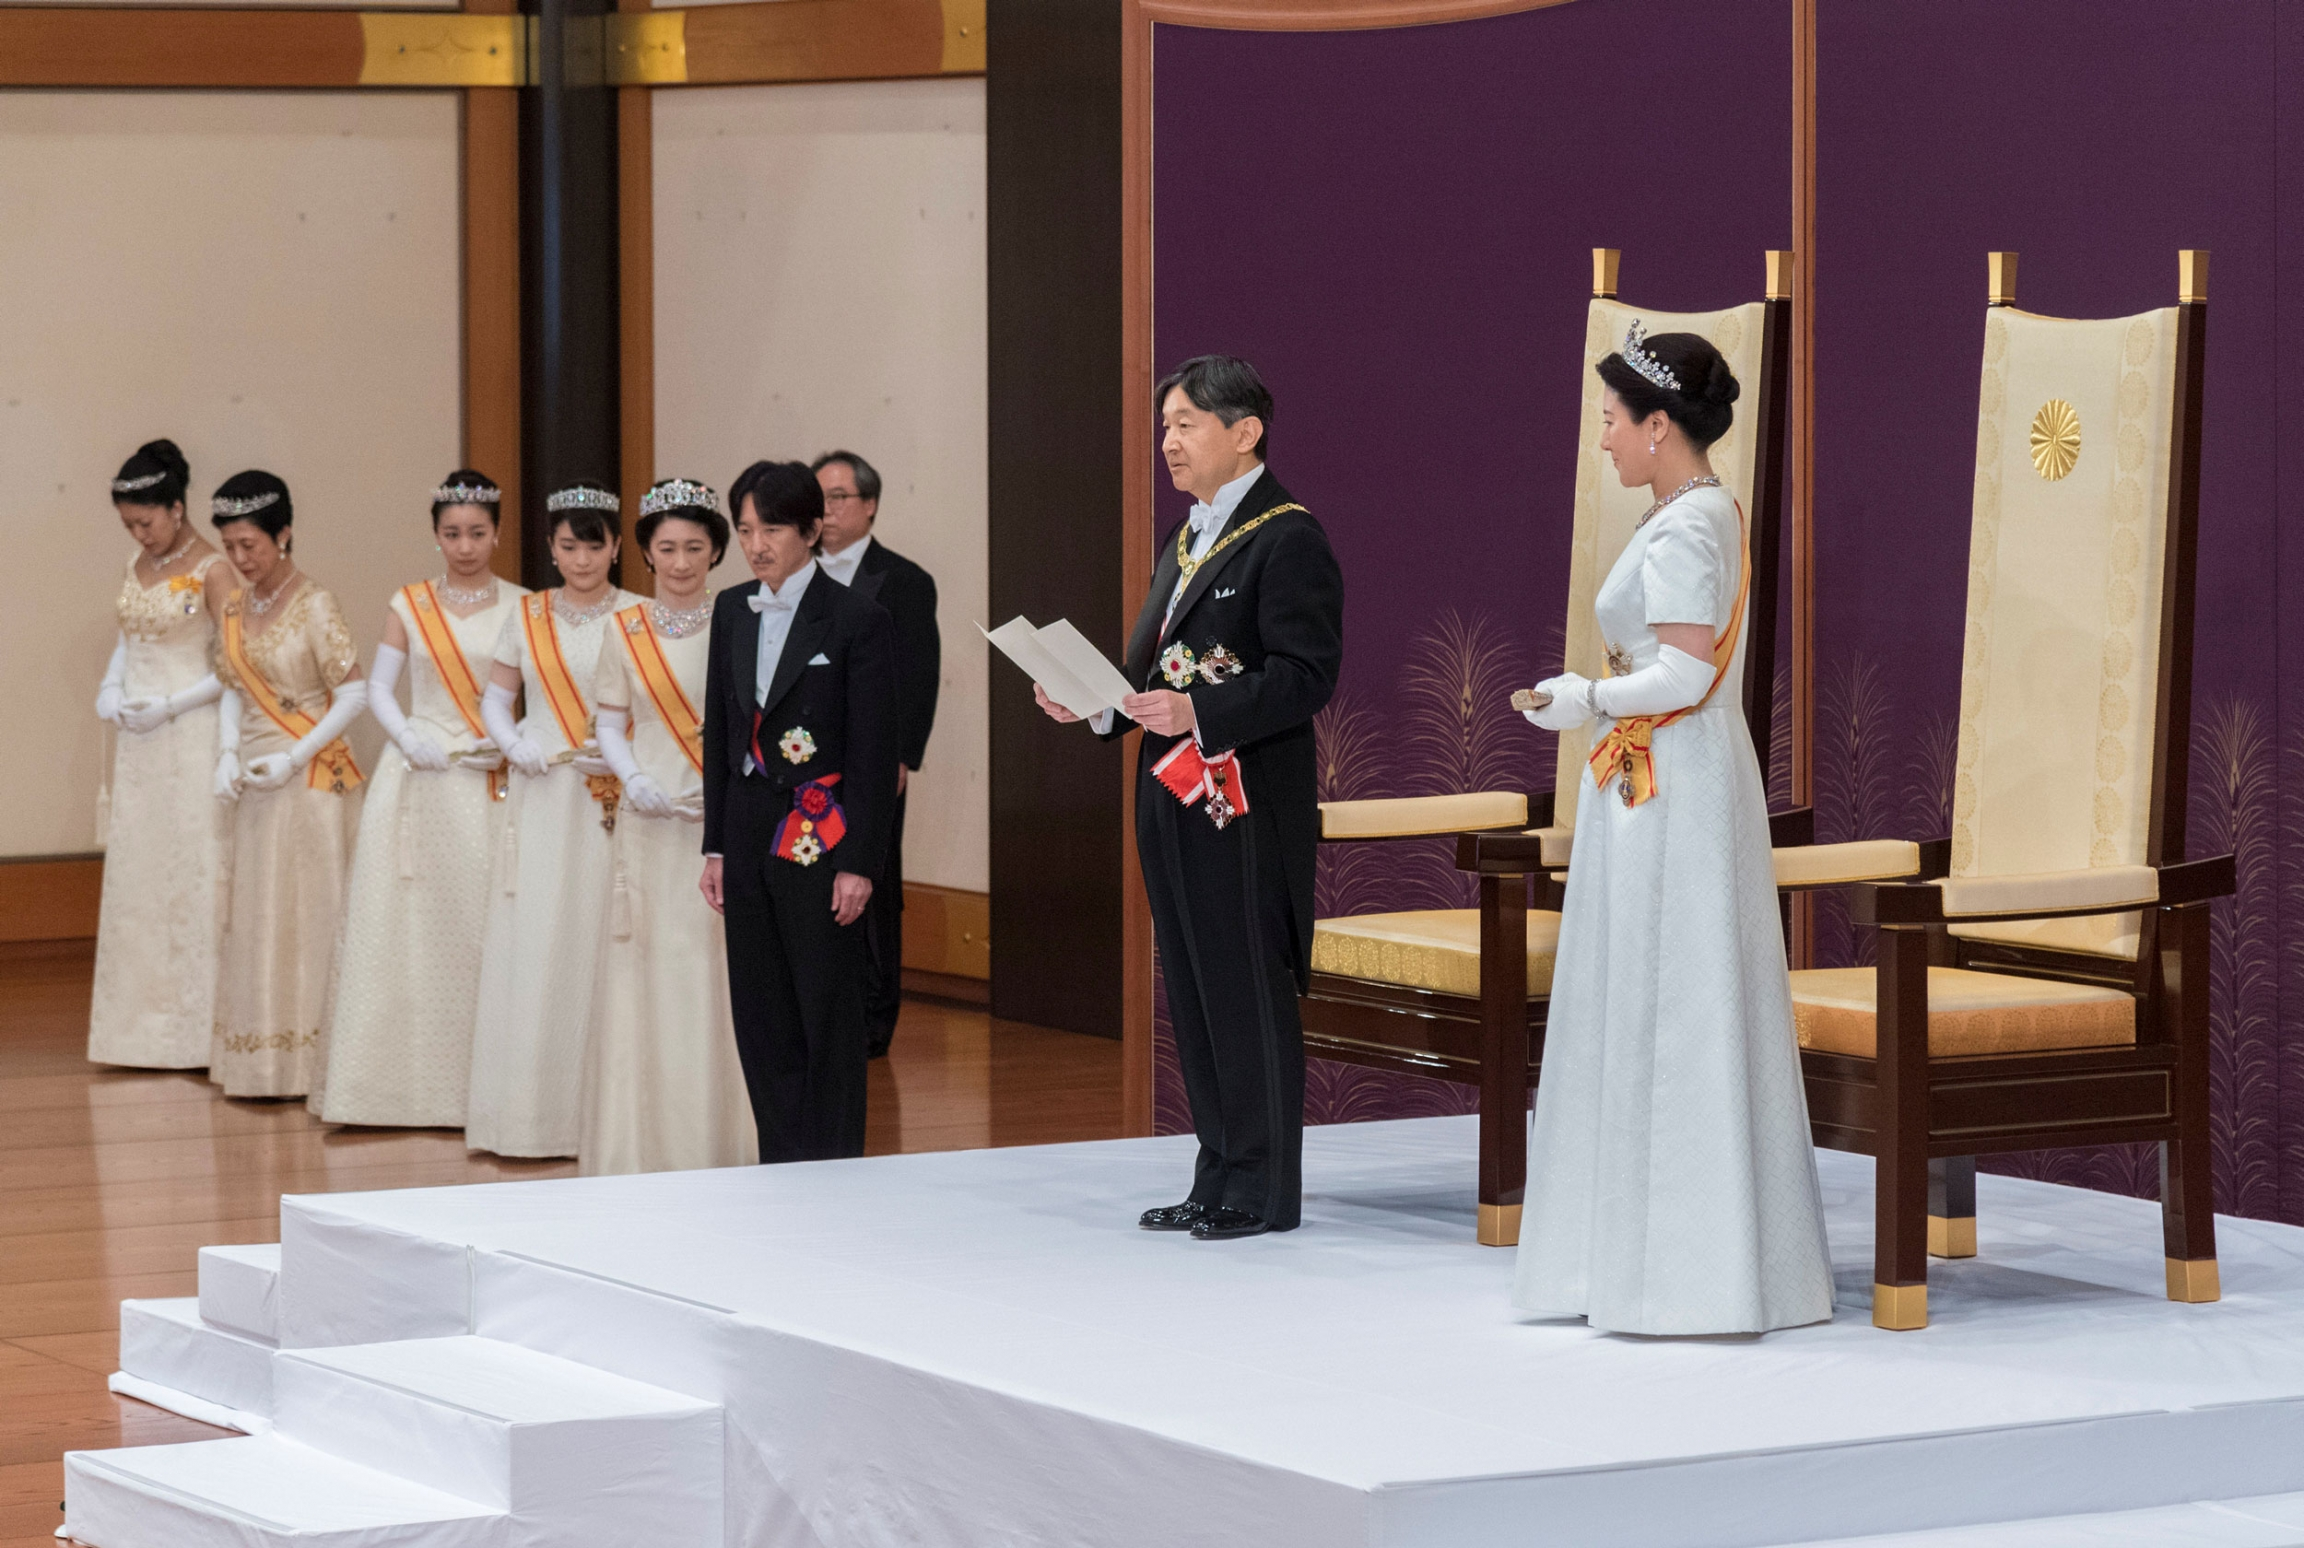 Japan's Emperor Naruhito, flanked by Empress Masako are shown standing on a white platform in front of tall-backed chairs.